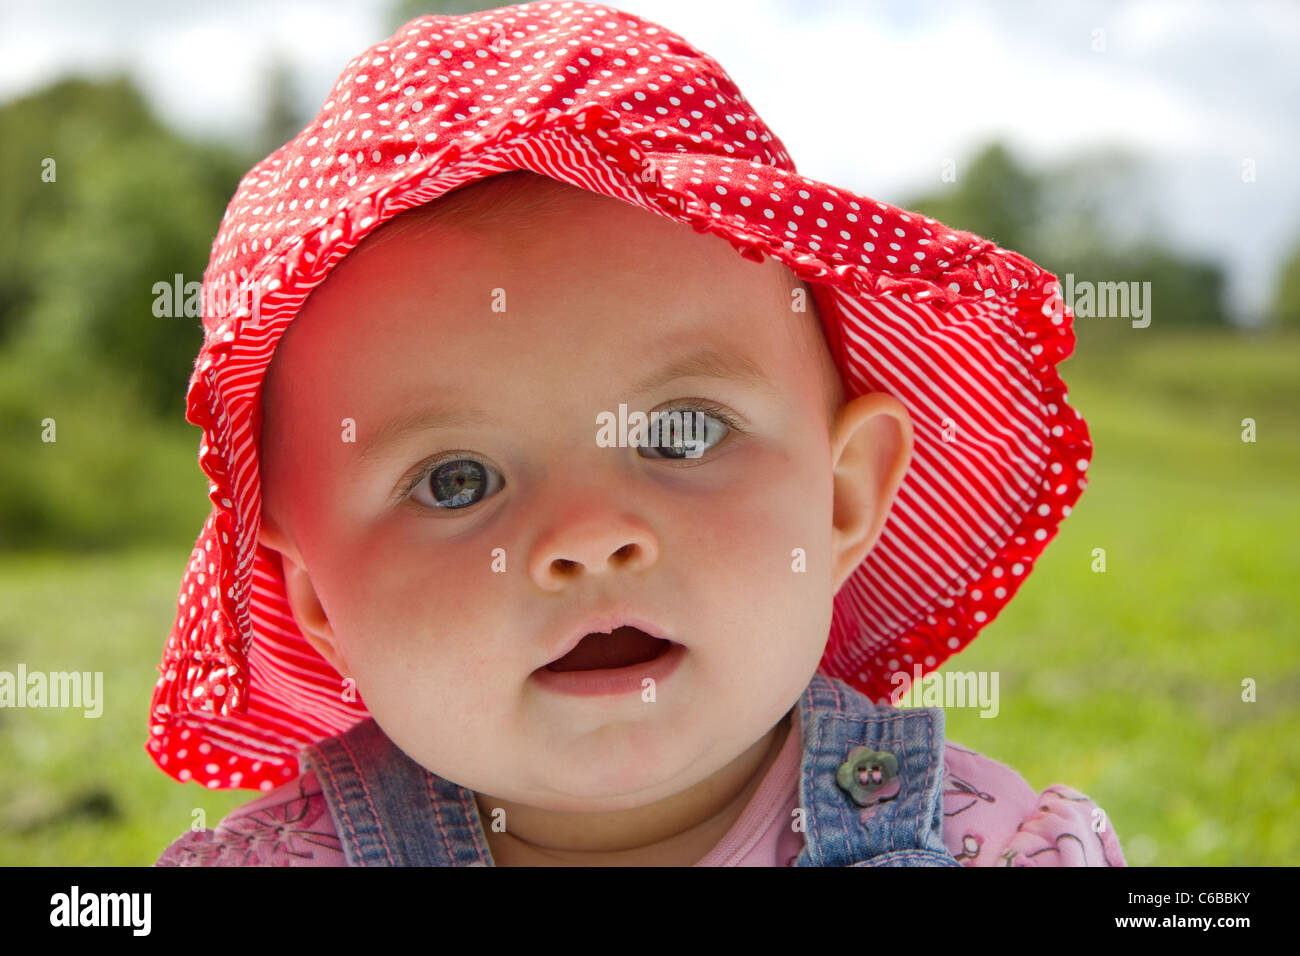 Gorgeous baby girl sitting in a park wearing a cute summer hat - Stock Image